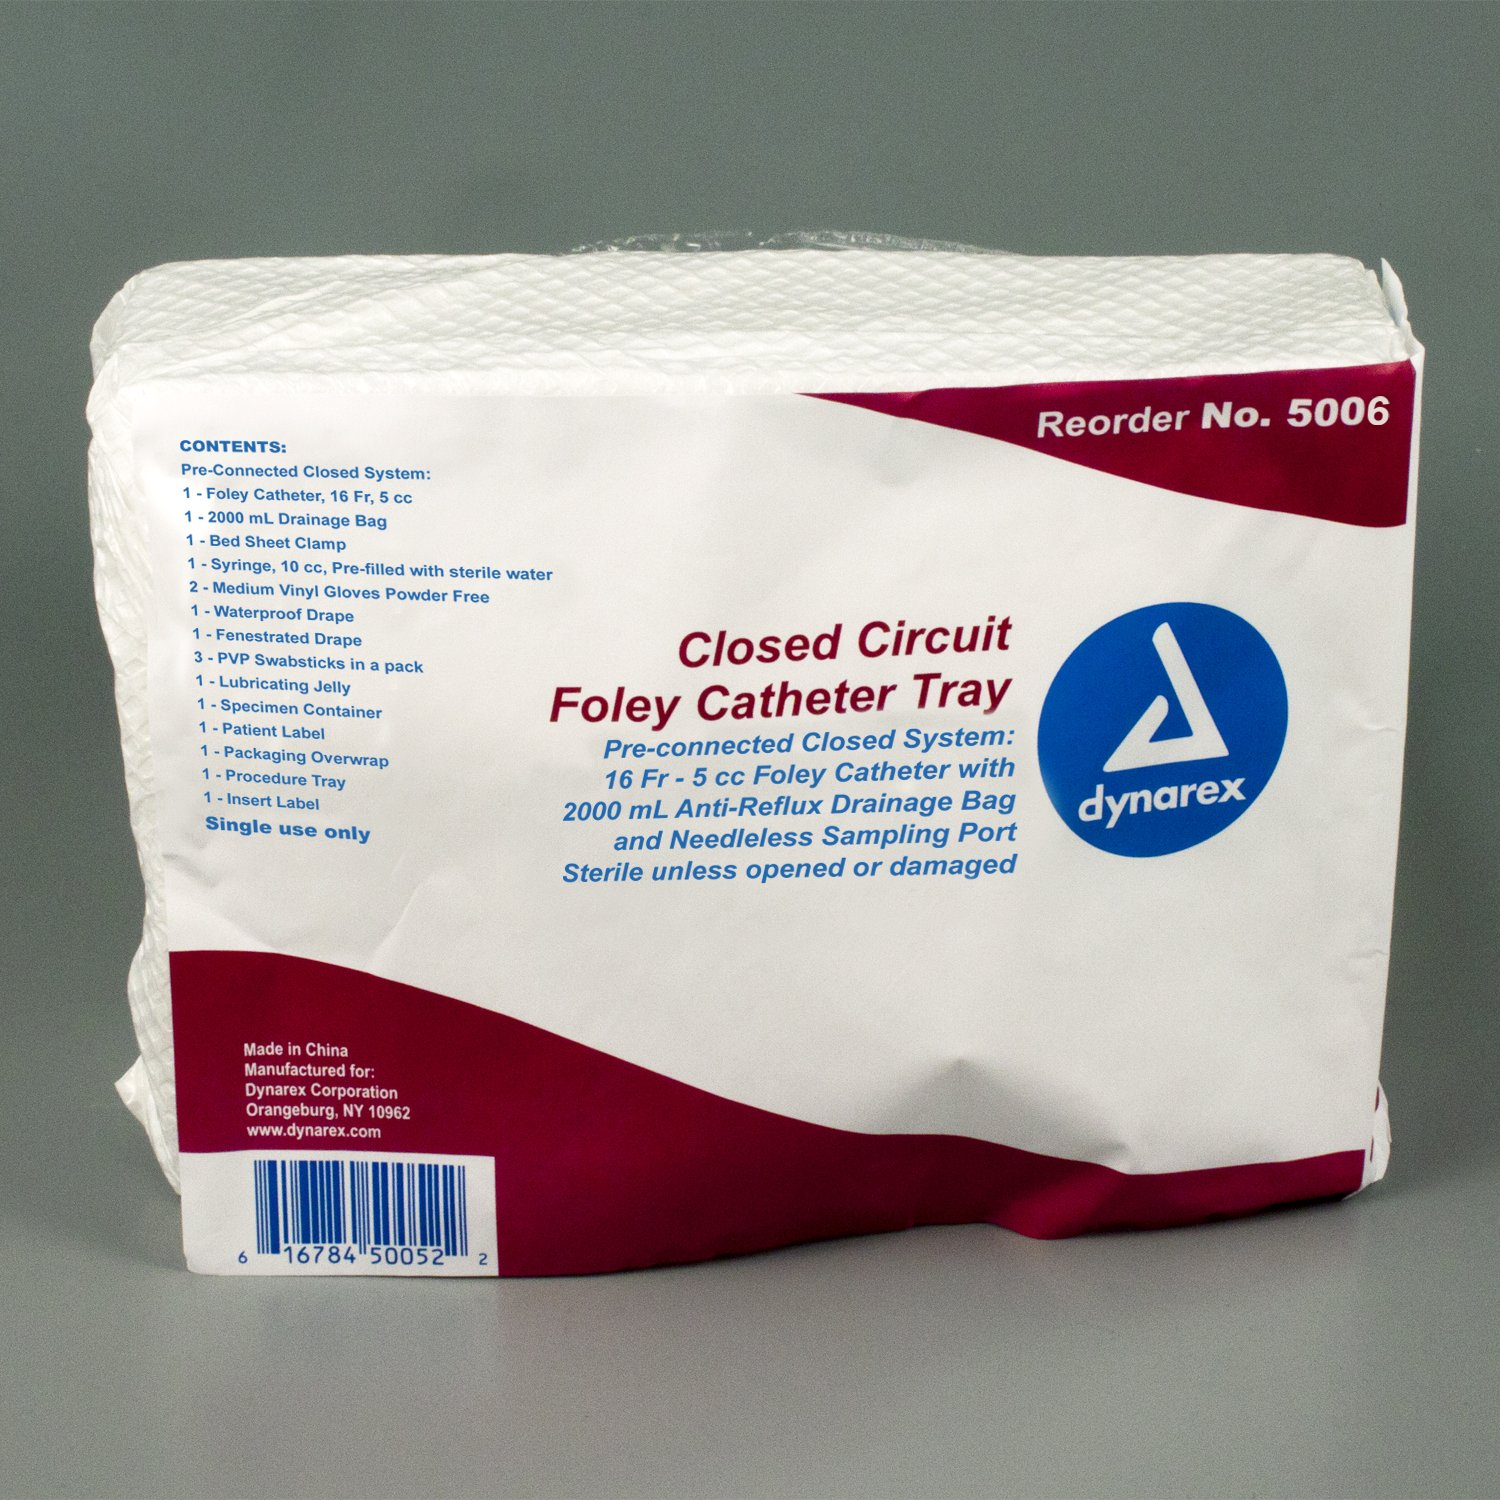 Dynarex 5006 Closed Circuit Foley Catheter Tray, Sterile 16 FR (Pack of 10)